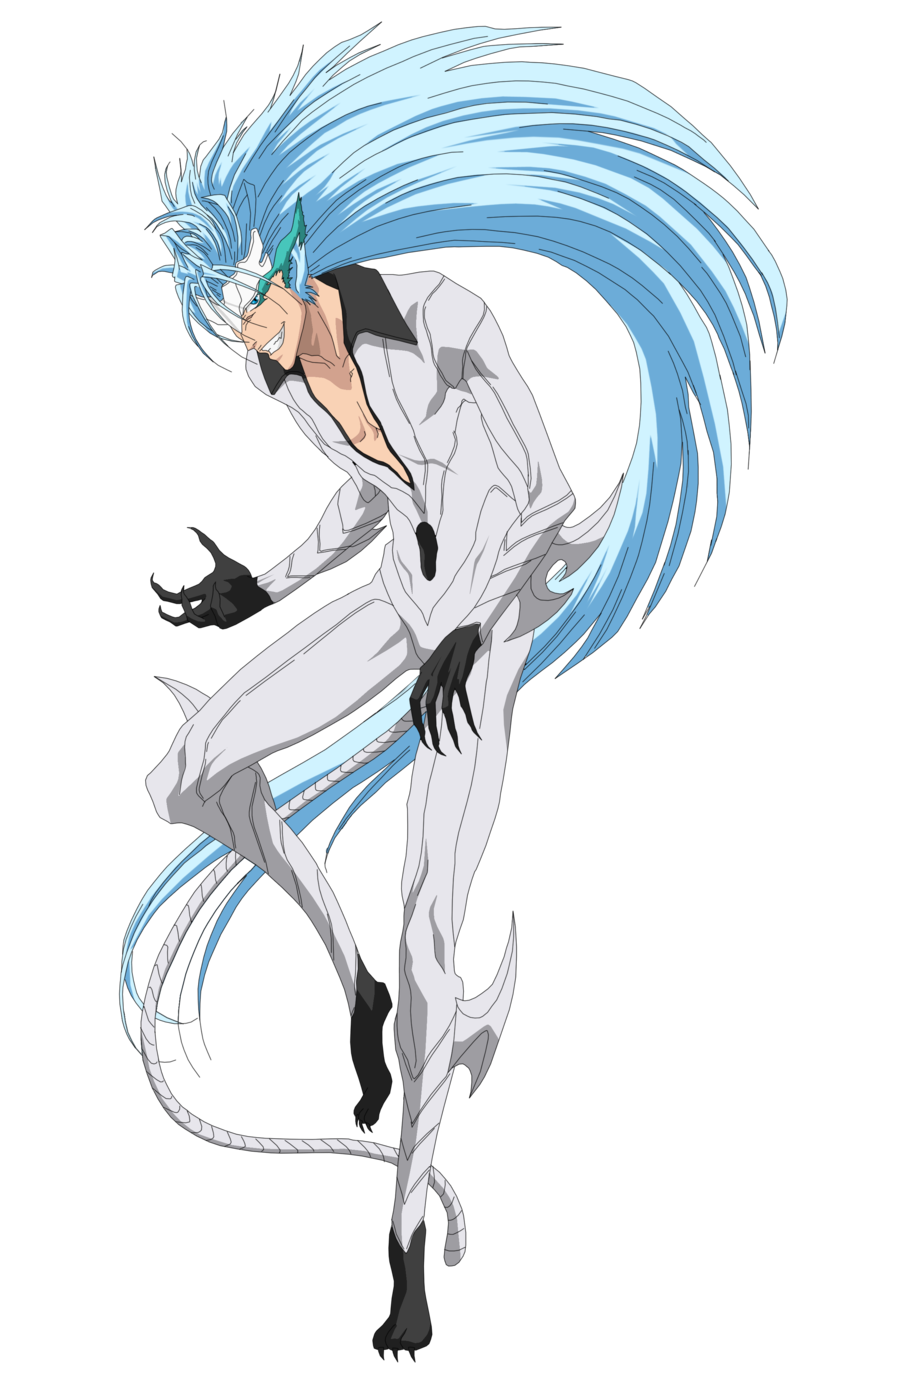 Image result for grimmjow jeagerjaques release